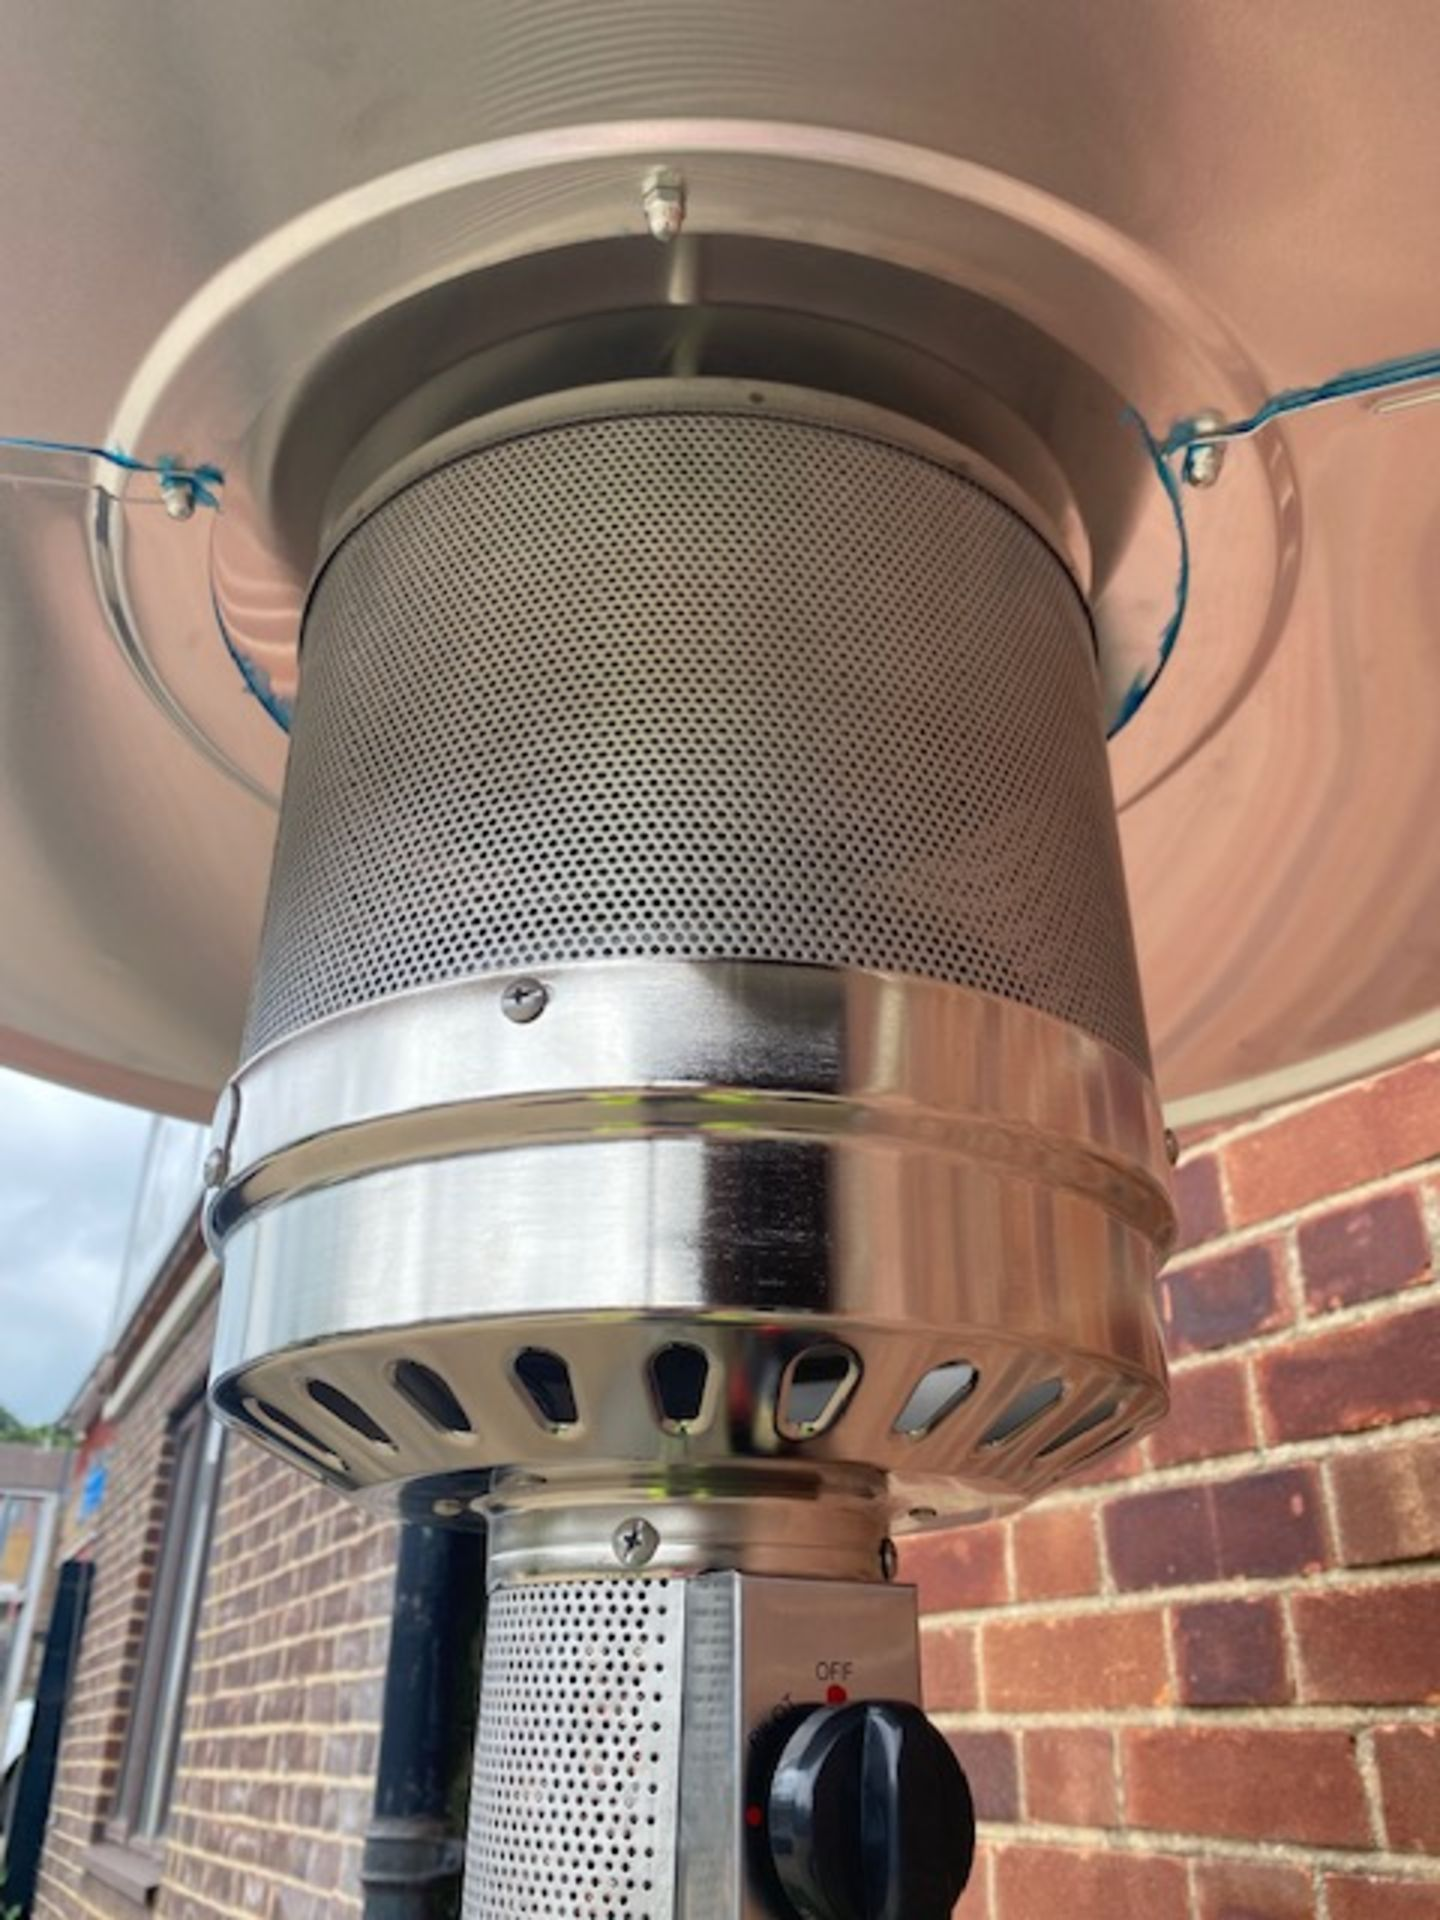 + VAT Brand New Chelsea Garden Company Garden Patio Heater With Cover - Item Is Available From - Image 6 of 9